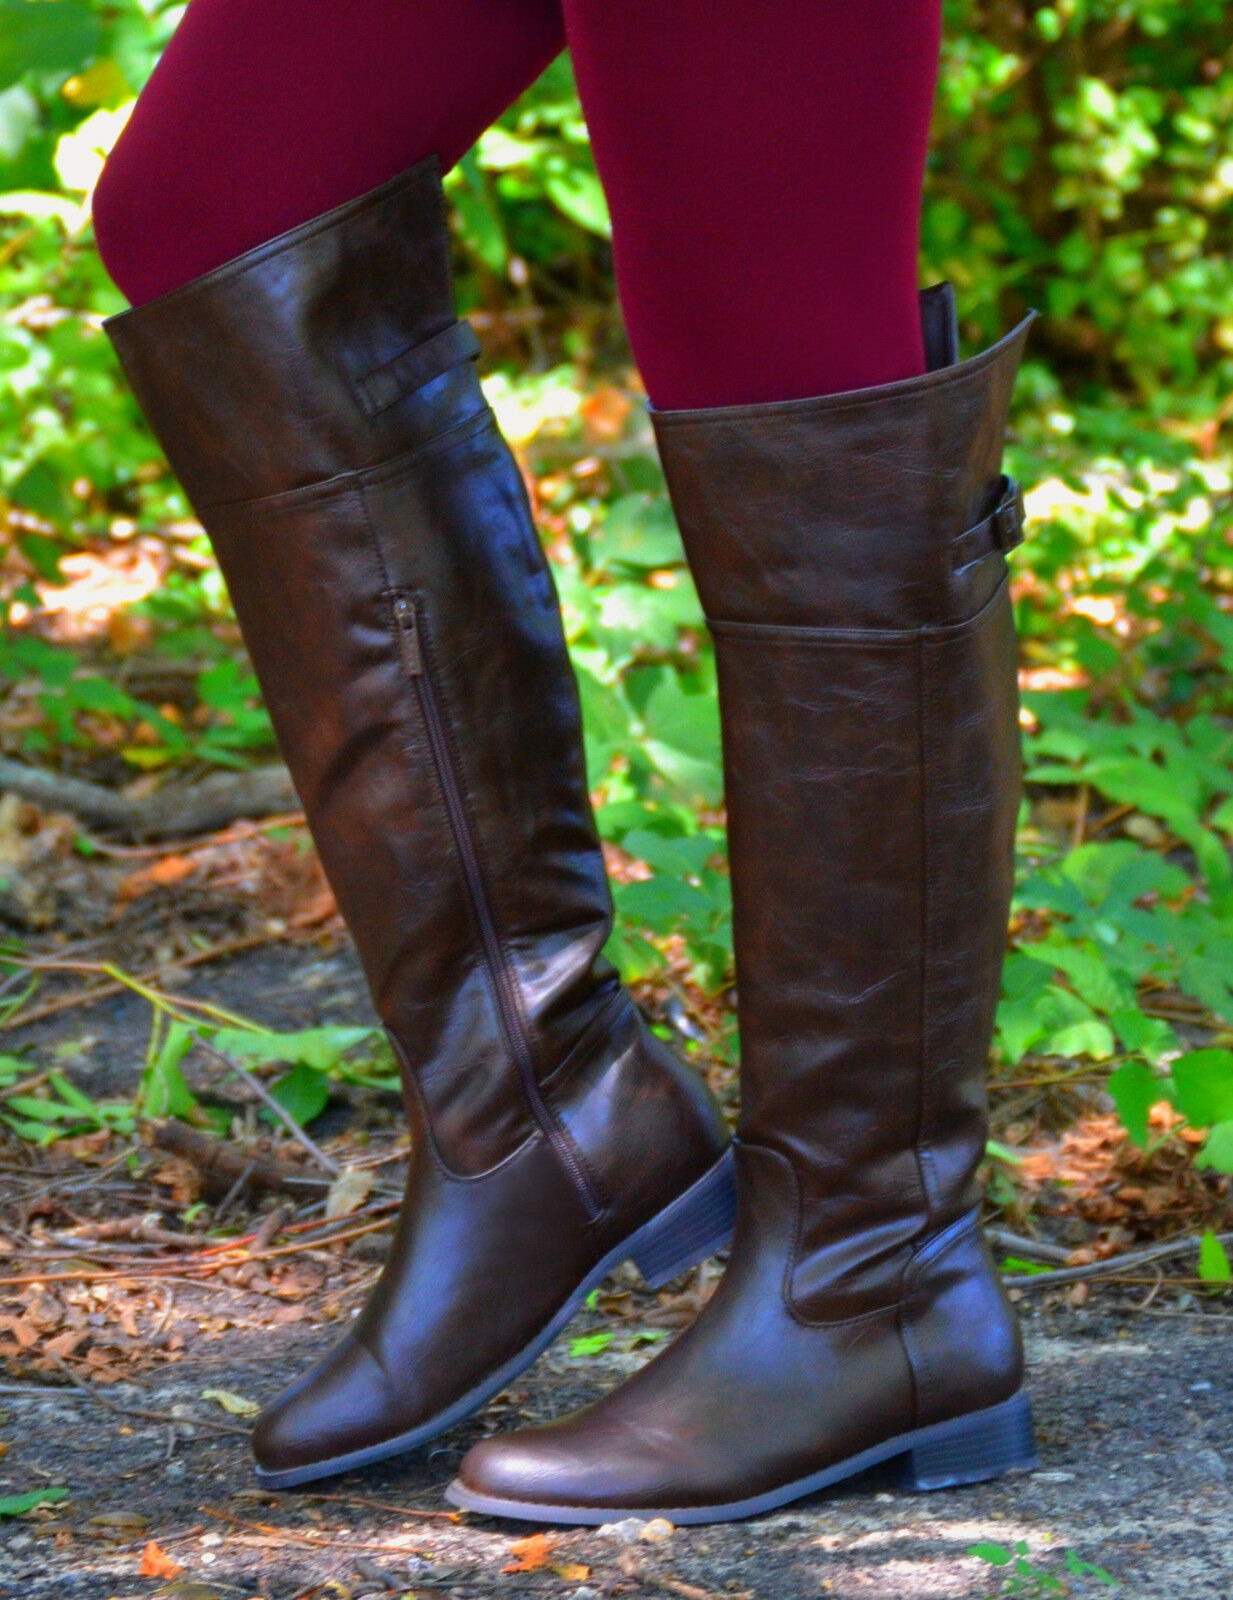 Women's Chocolate Brown Rider Boots With Side Zipper (BrownB-003) Size-8.5